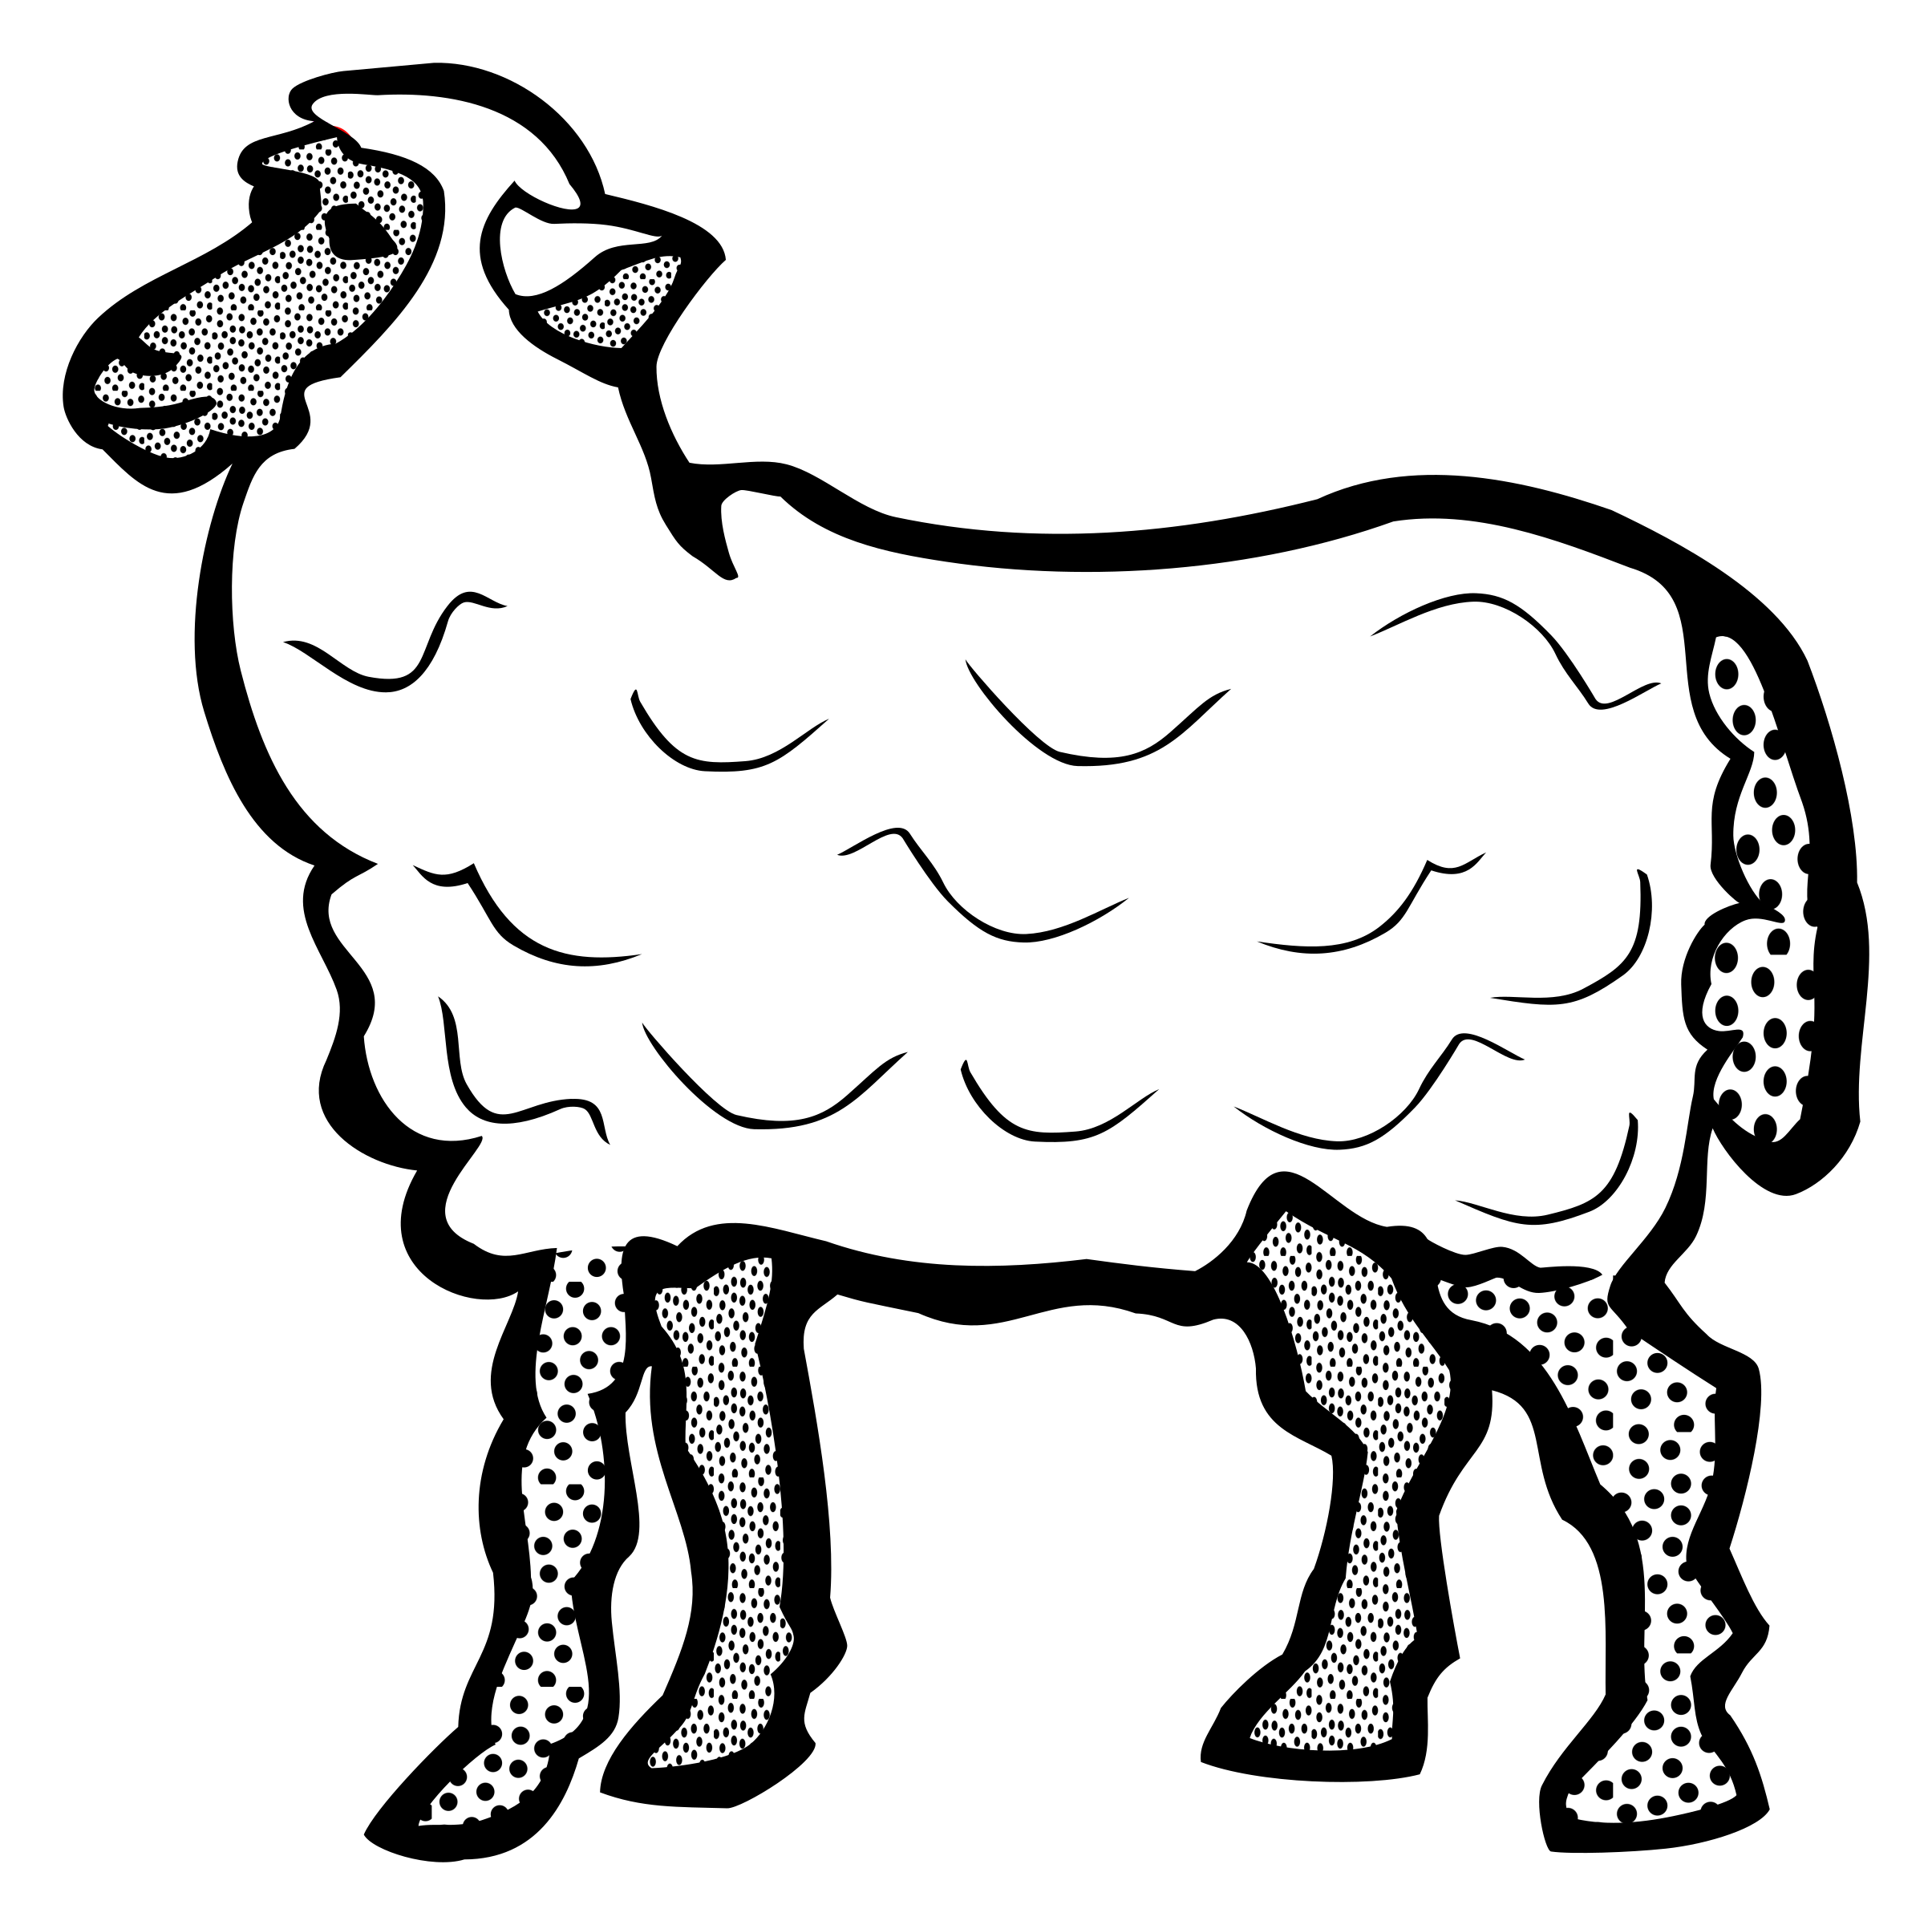 Drawing sheep small. Clipart lineart big image